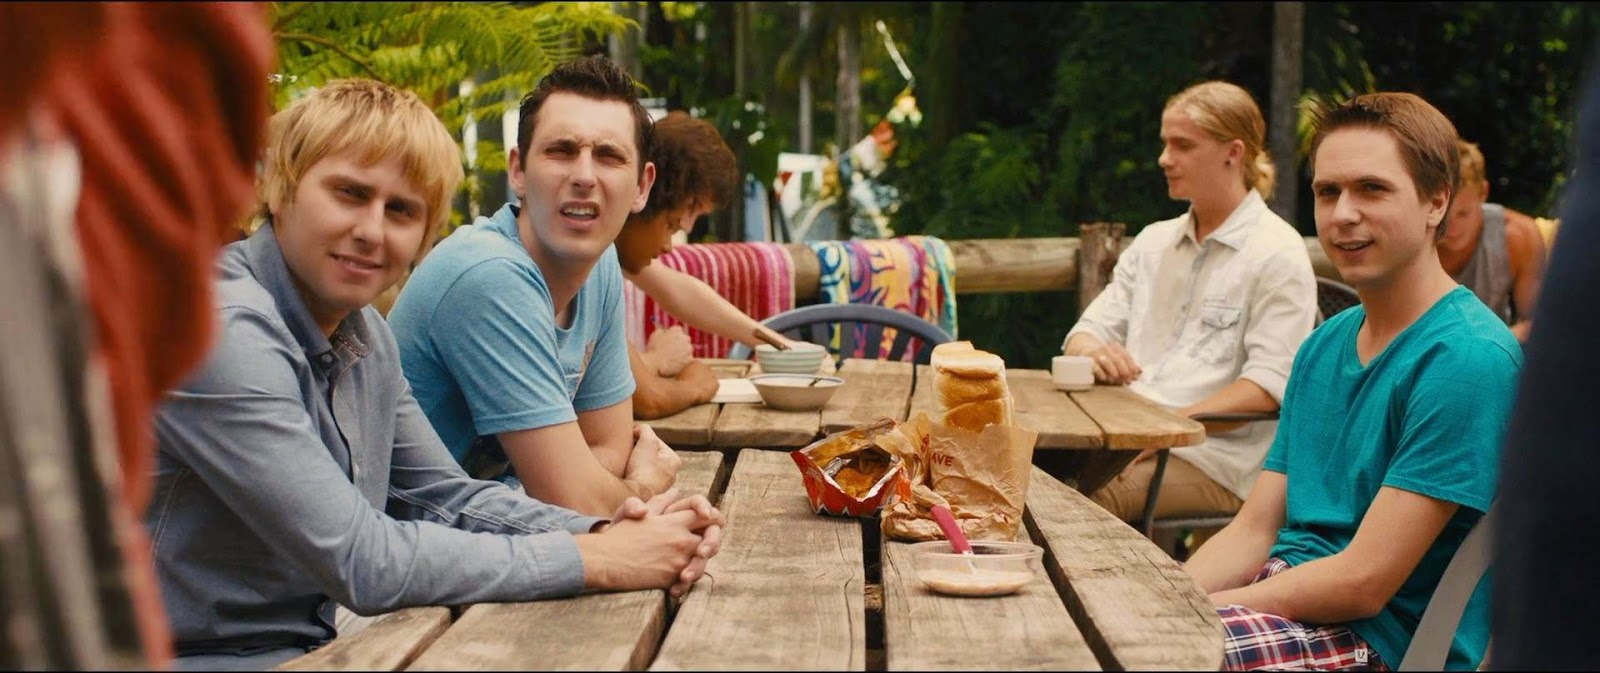 The Inbetweeners 2 (2014) S2 s The Inbetweeners 2 (2014)